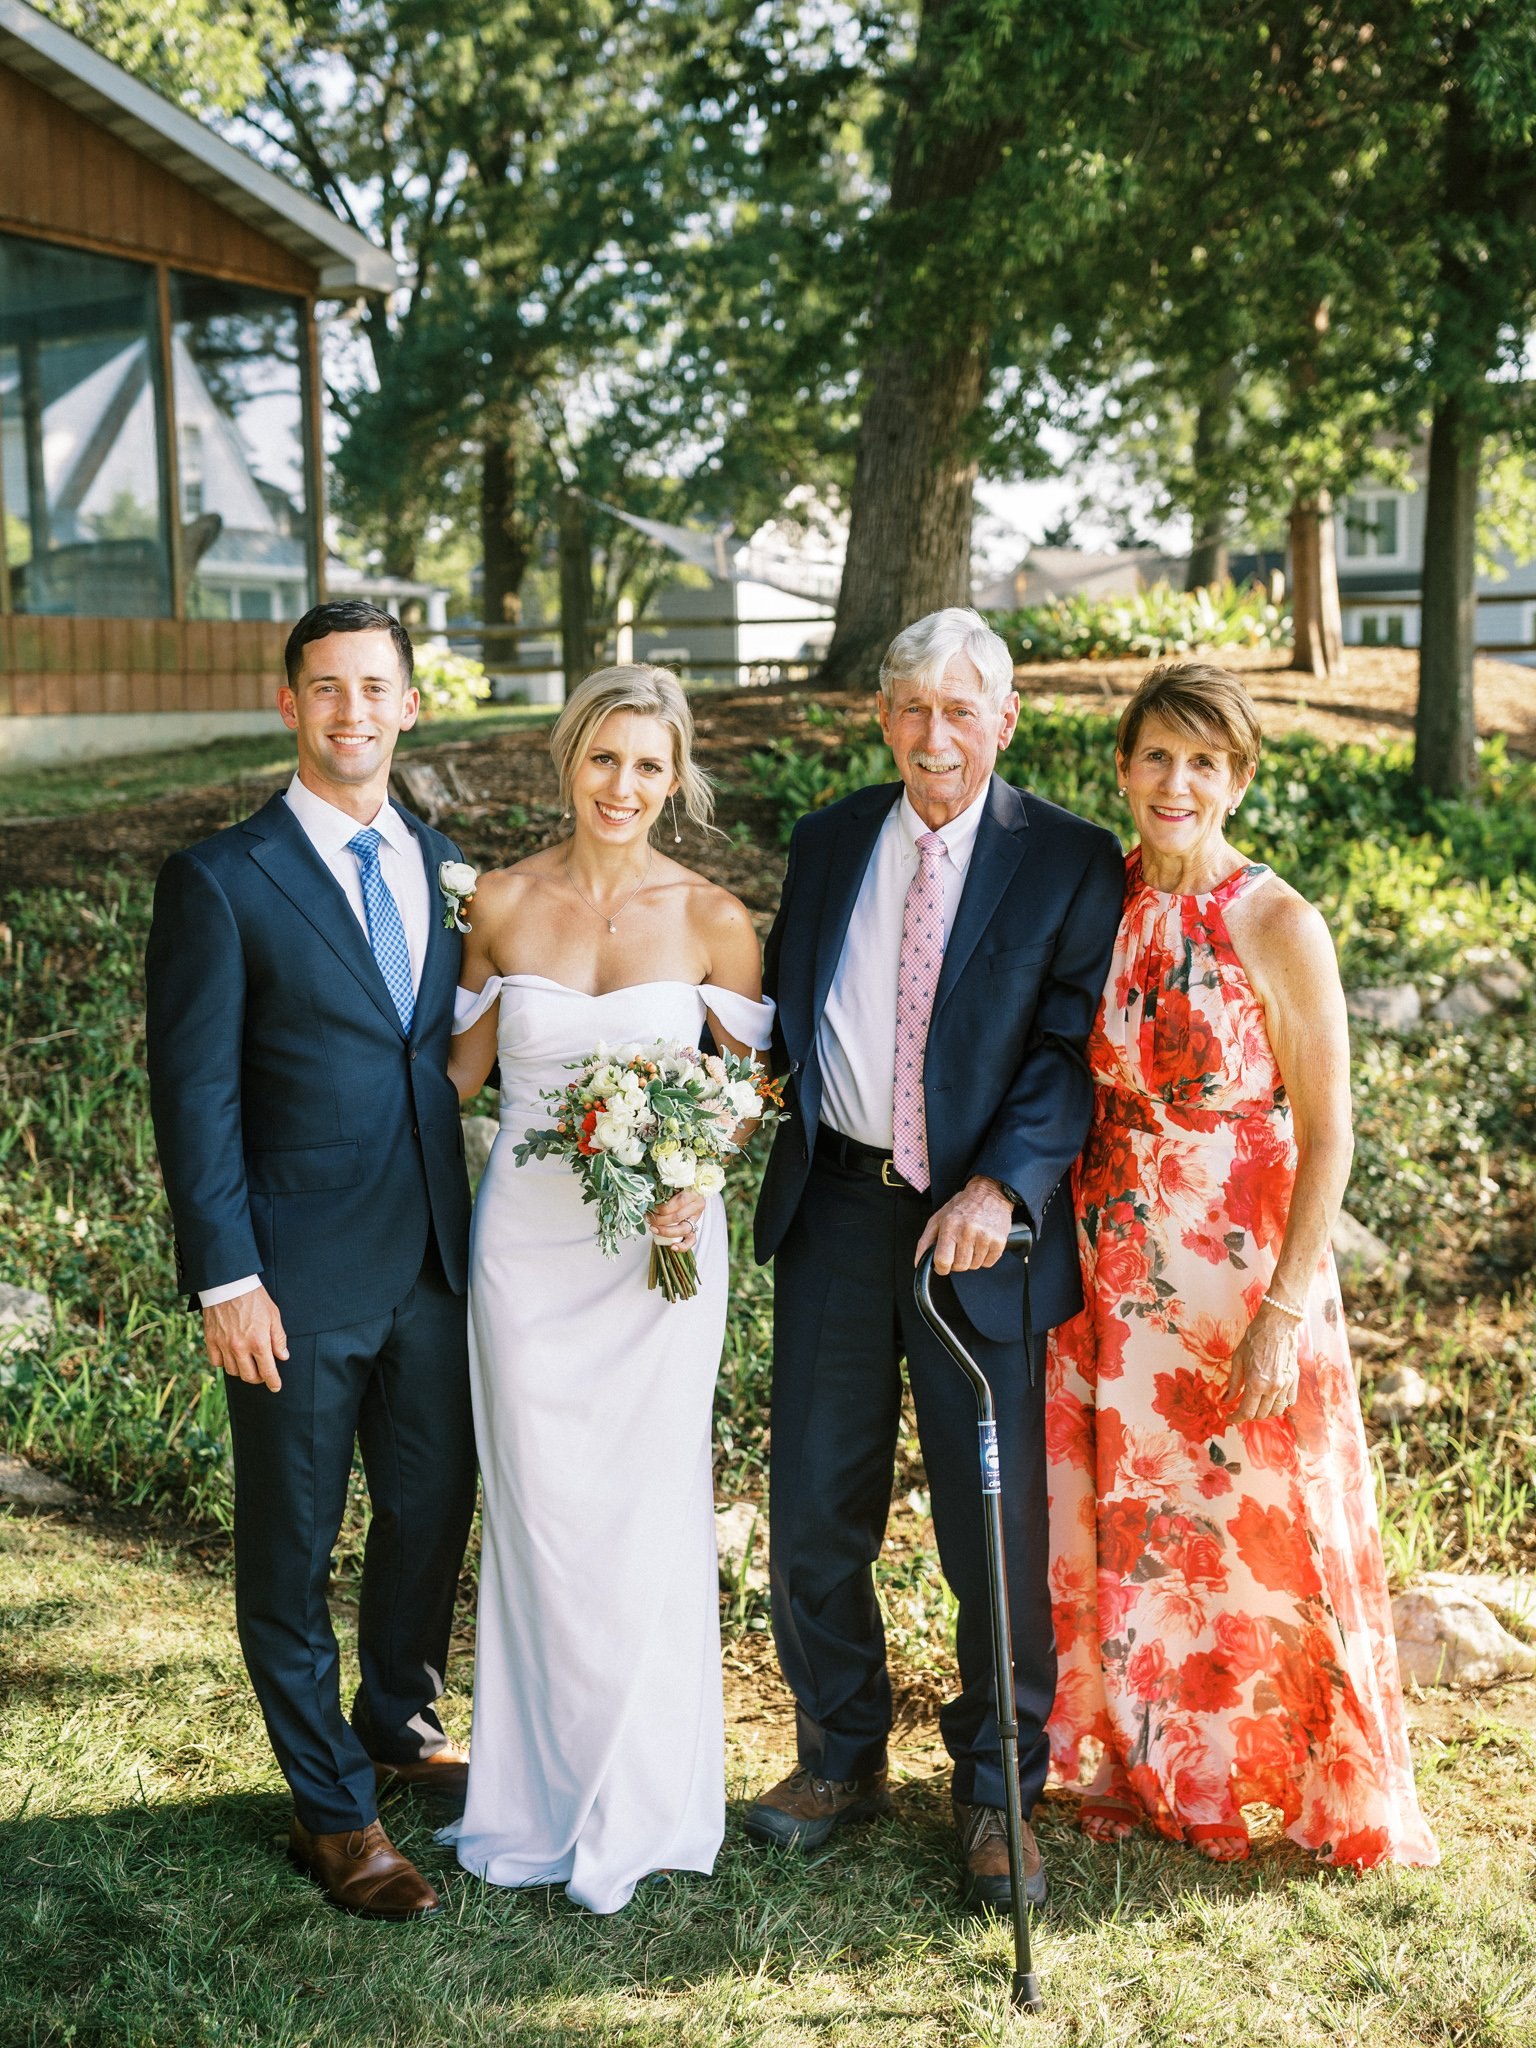 Gray_Joiner_e. losinio photography_annapolis-maryland-waterfront-elopement-240